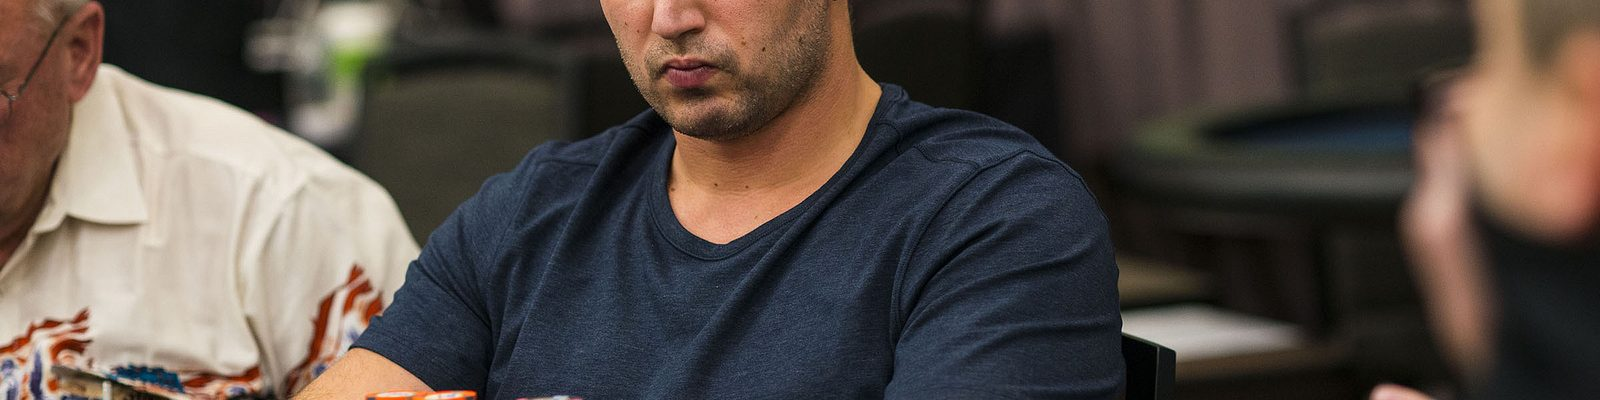 Darren Elias has four WPT wins and eyes a fifth at the LAPC. (Photo courtesy of the WPT)